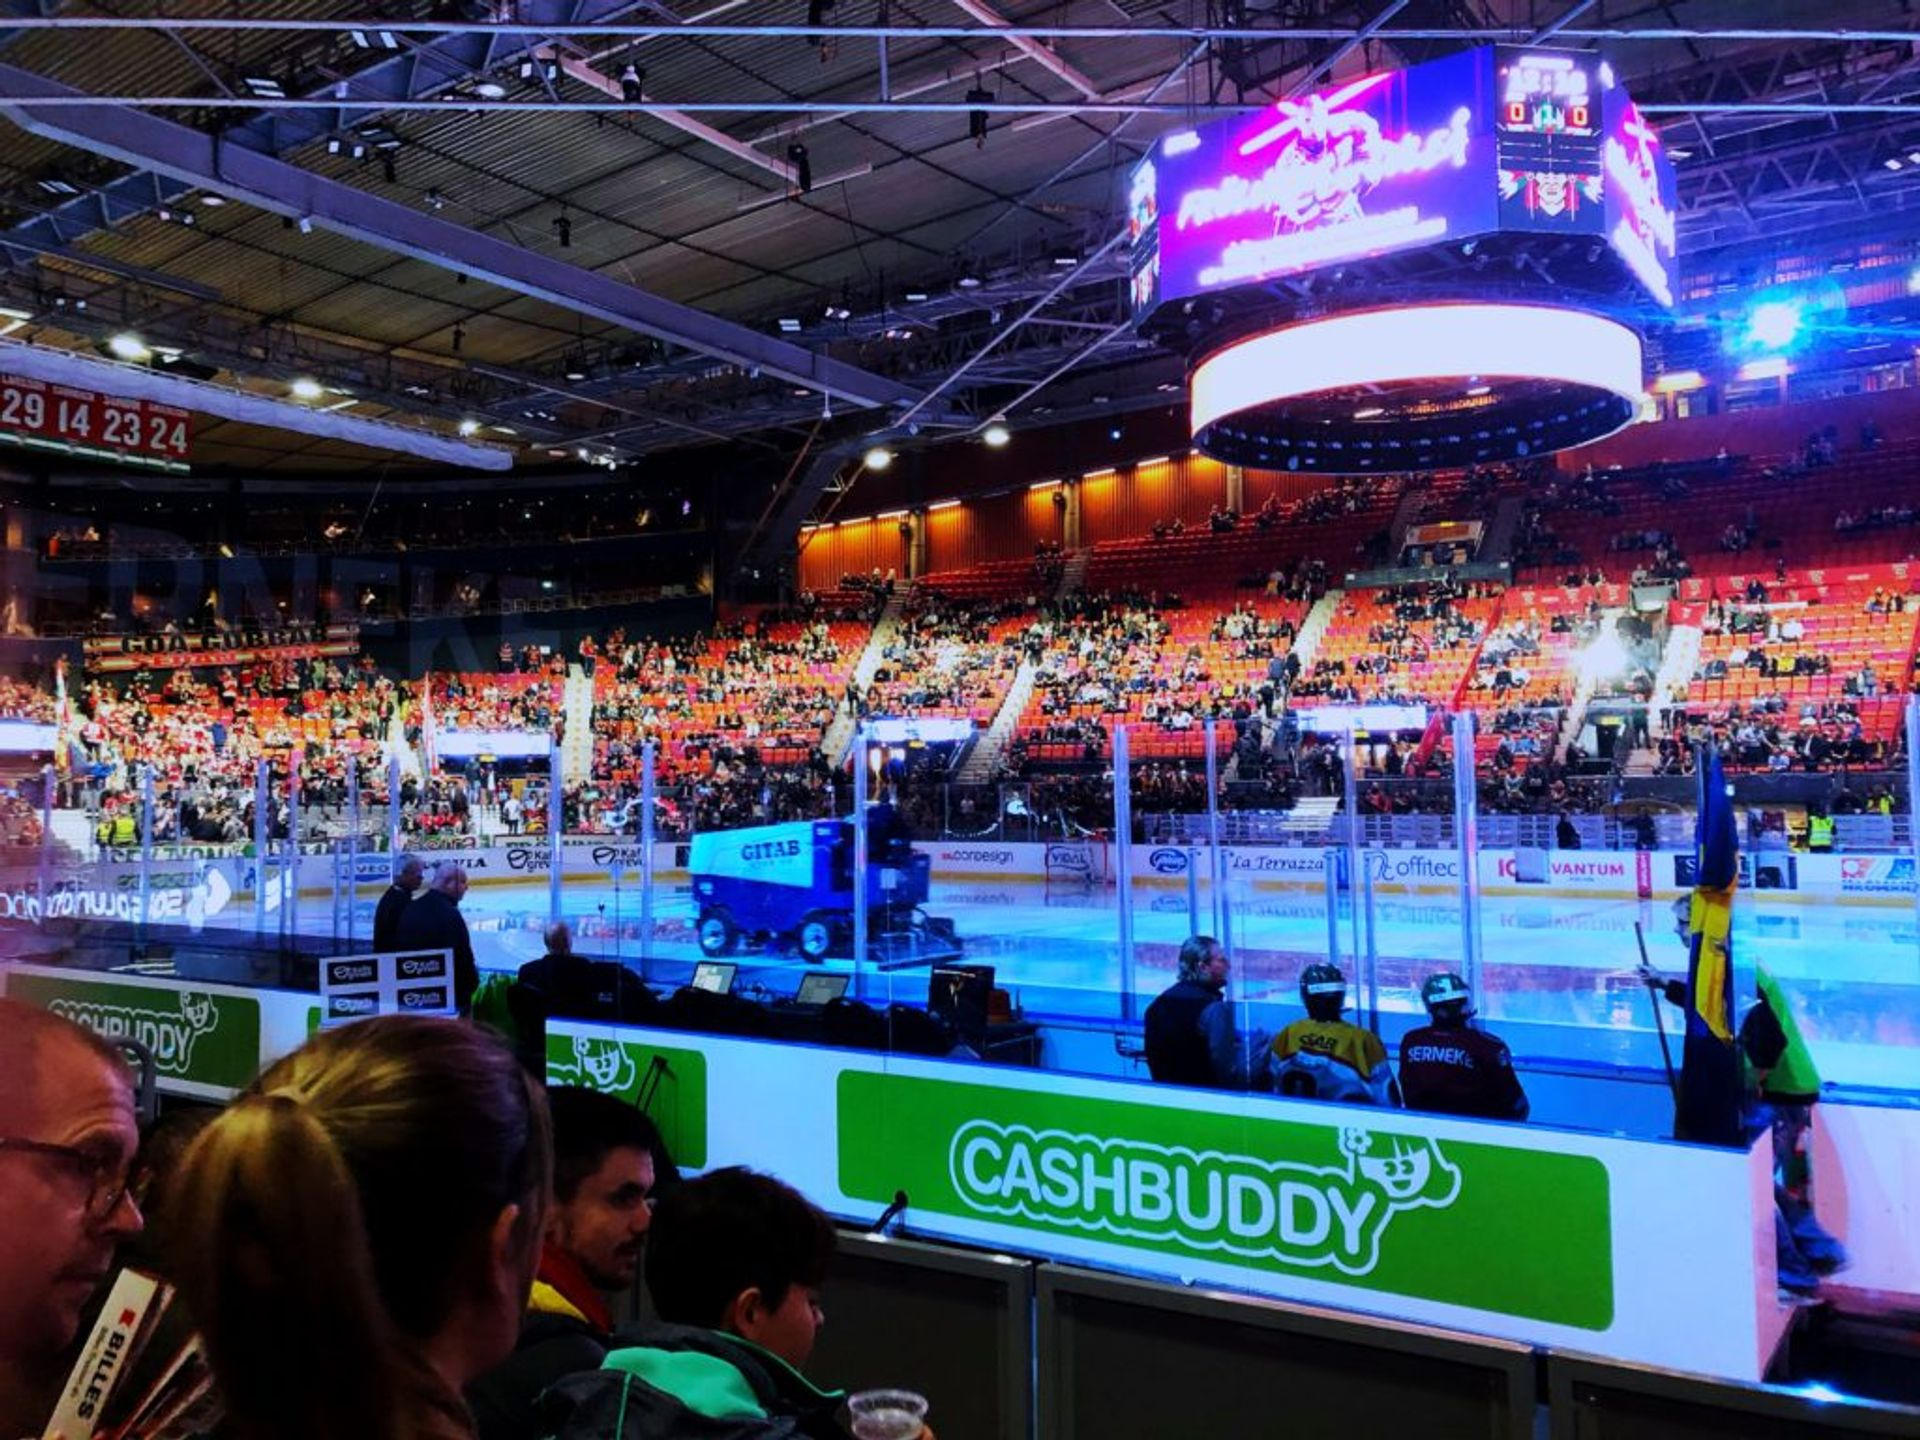 An ice hockey arena filled with people.